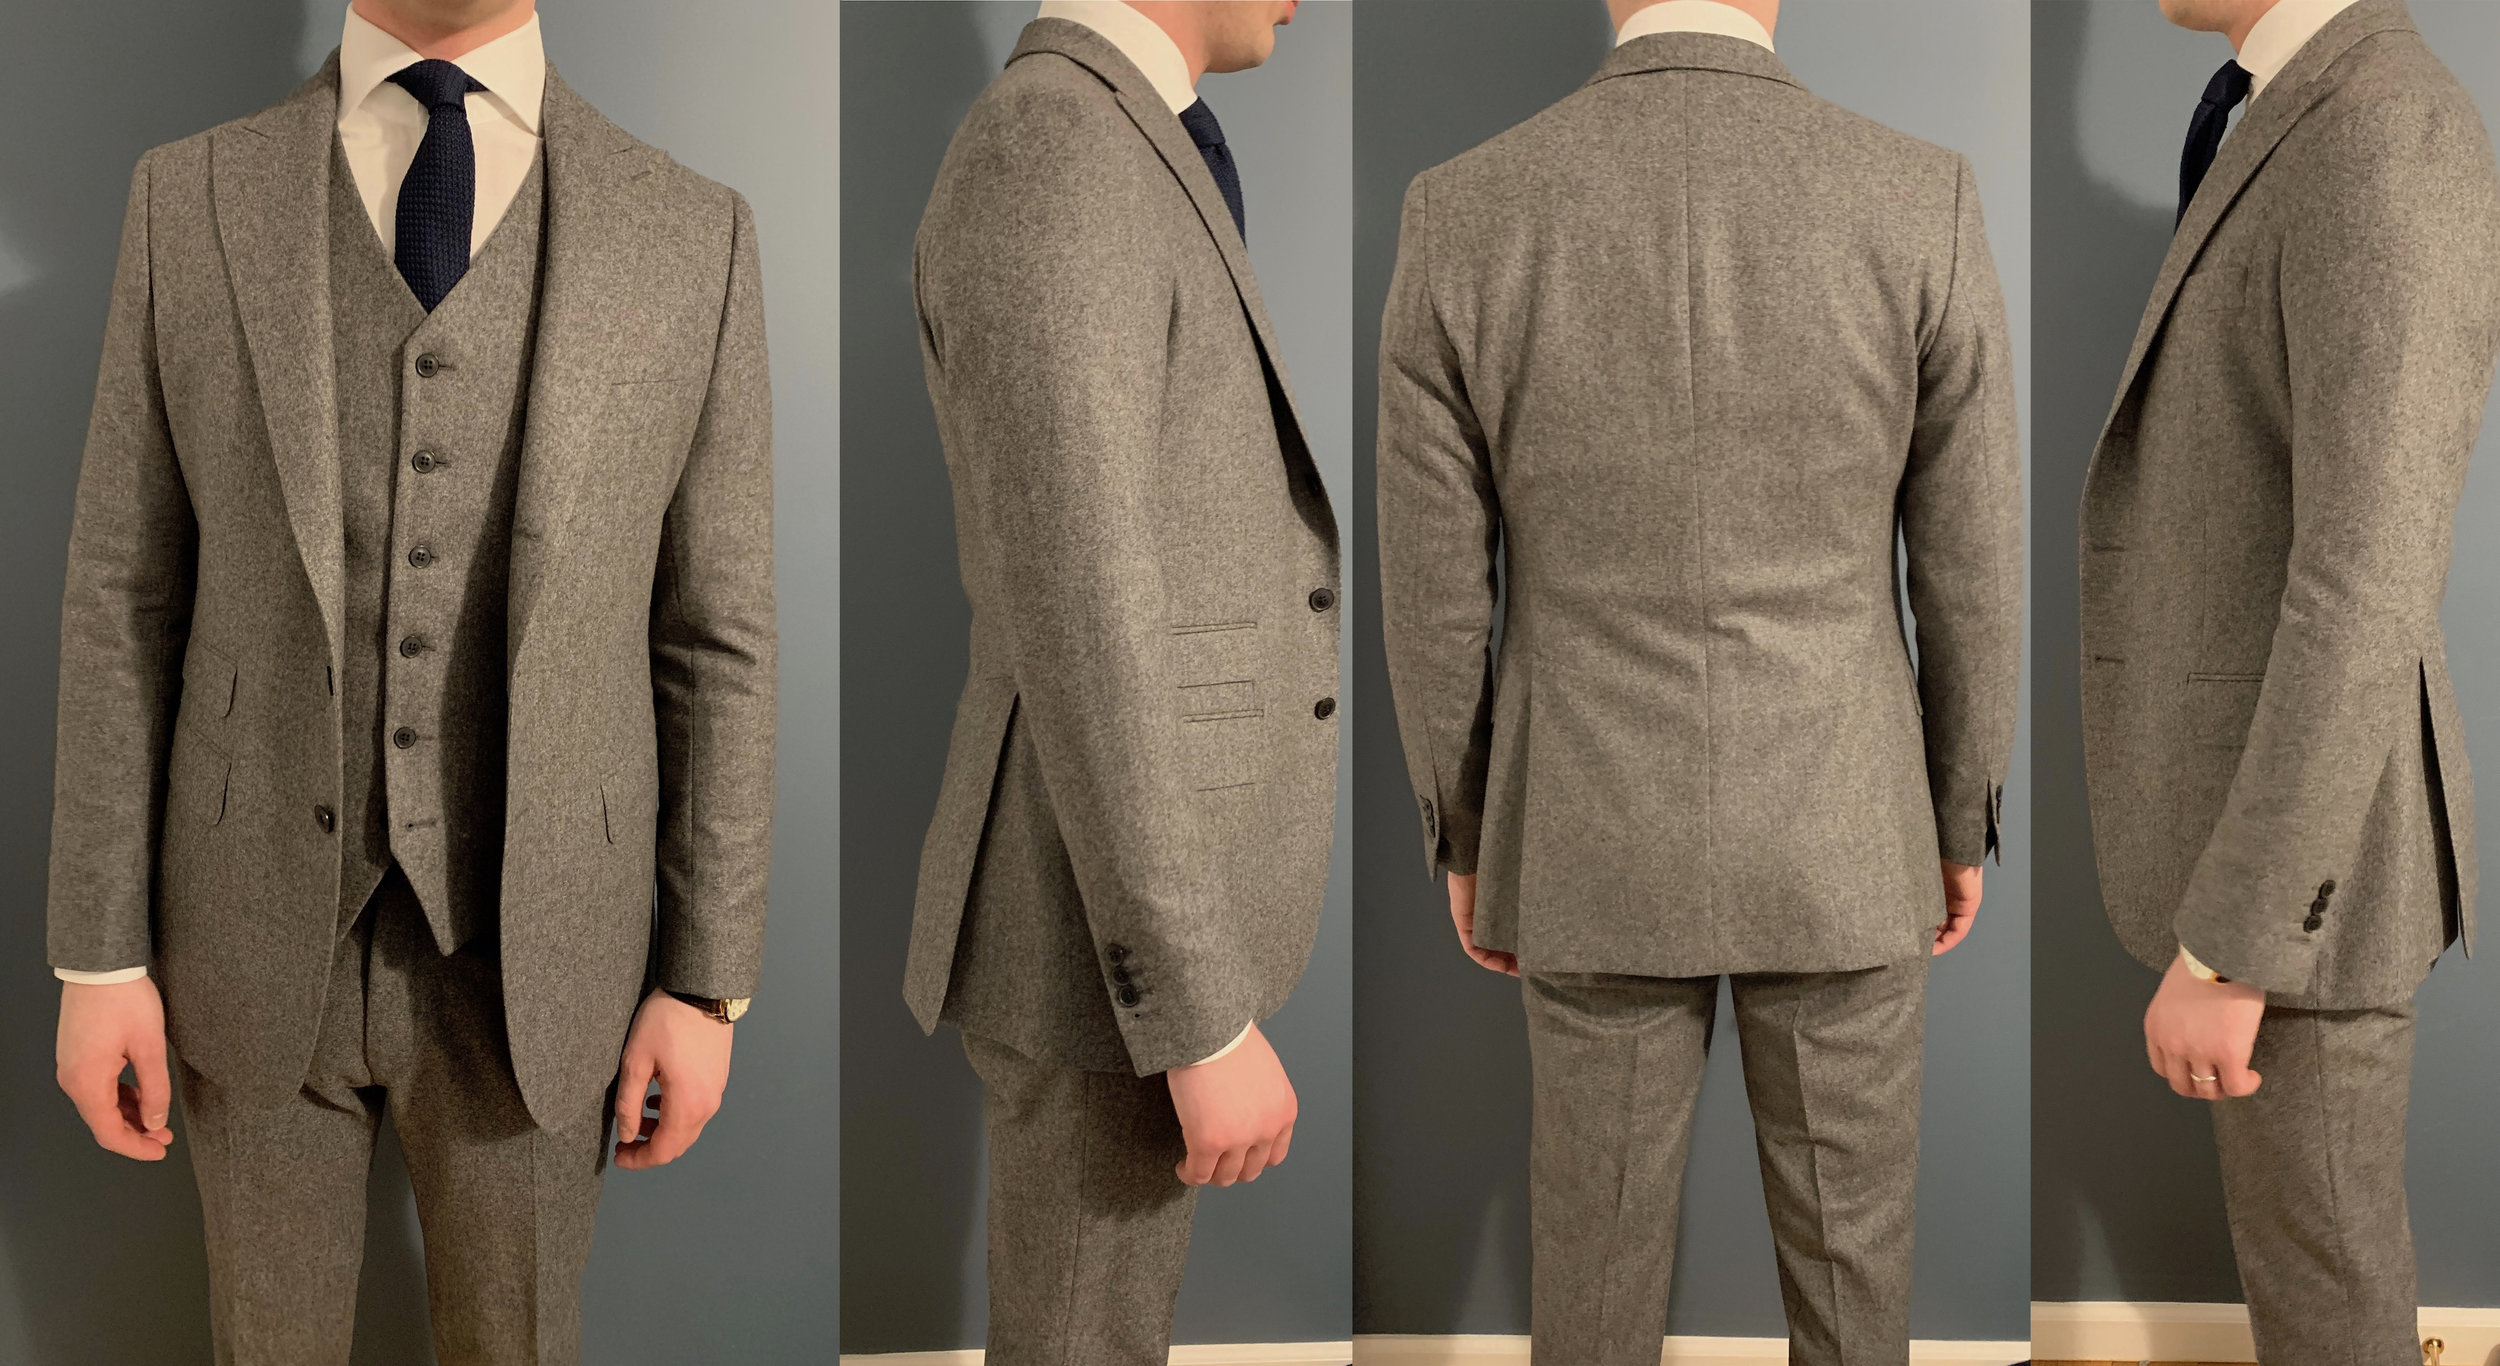 Oliver Wicks Custom MTM Suits In Review — Will They Reign